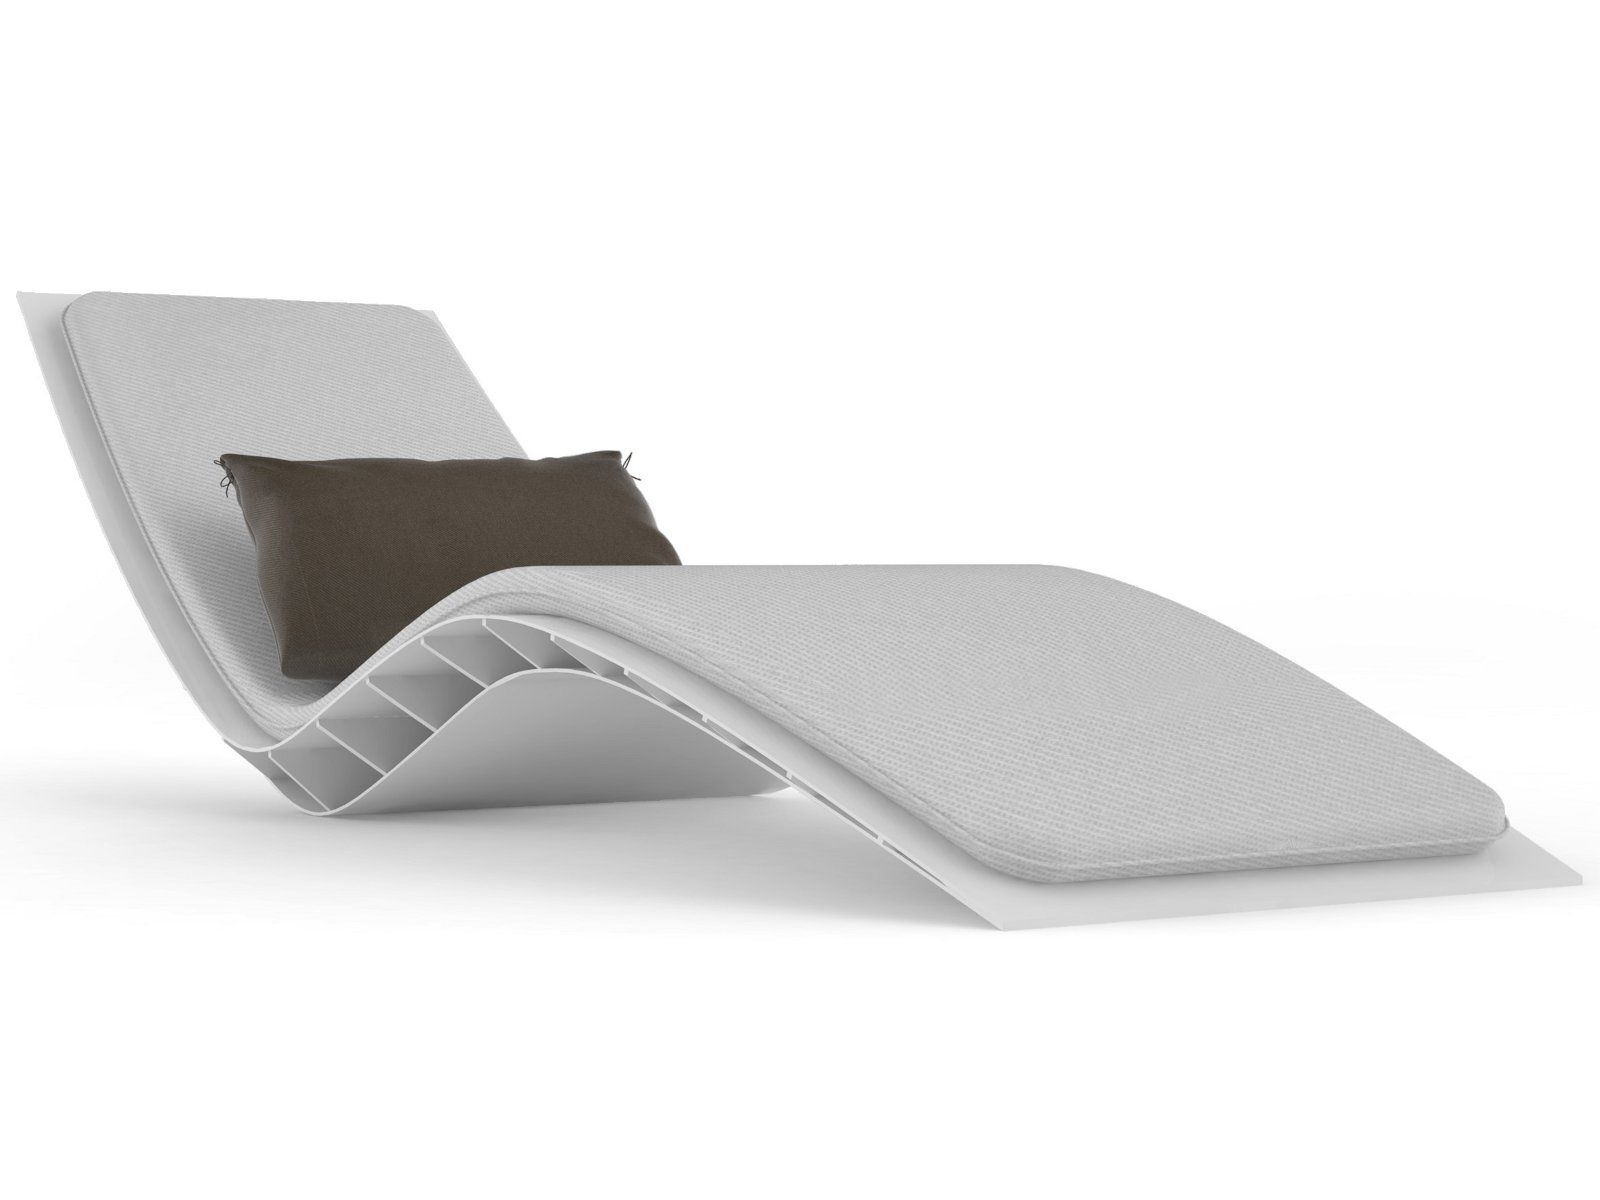 Popular Modern Indoors Chaise Lounge Chairs Throughout Furniture : Awesome Modern Chaise Lounge Chair Cushions For (View 12 of 15)